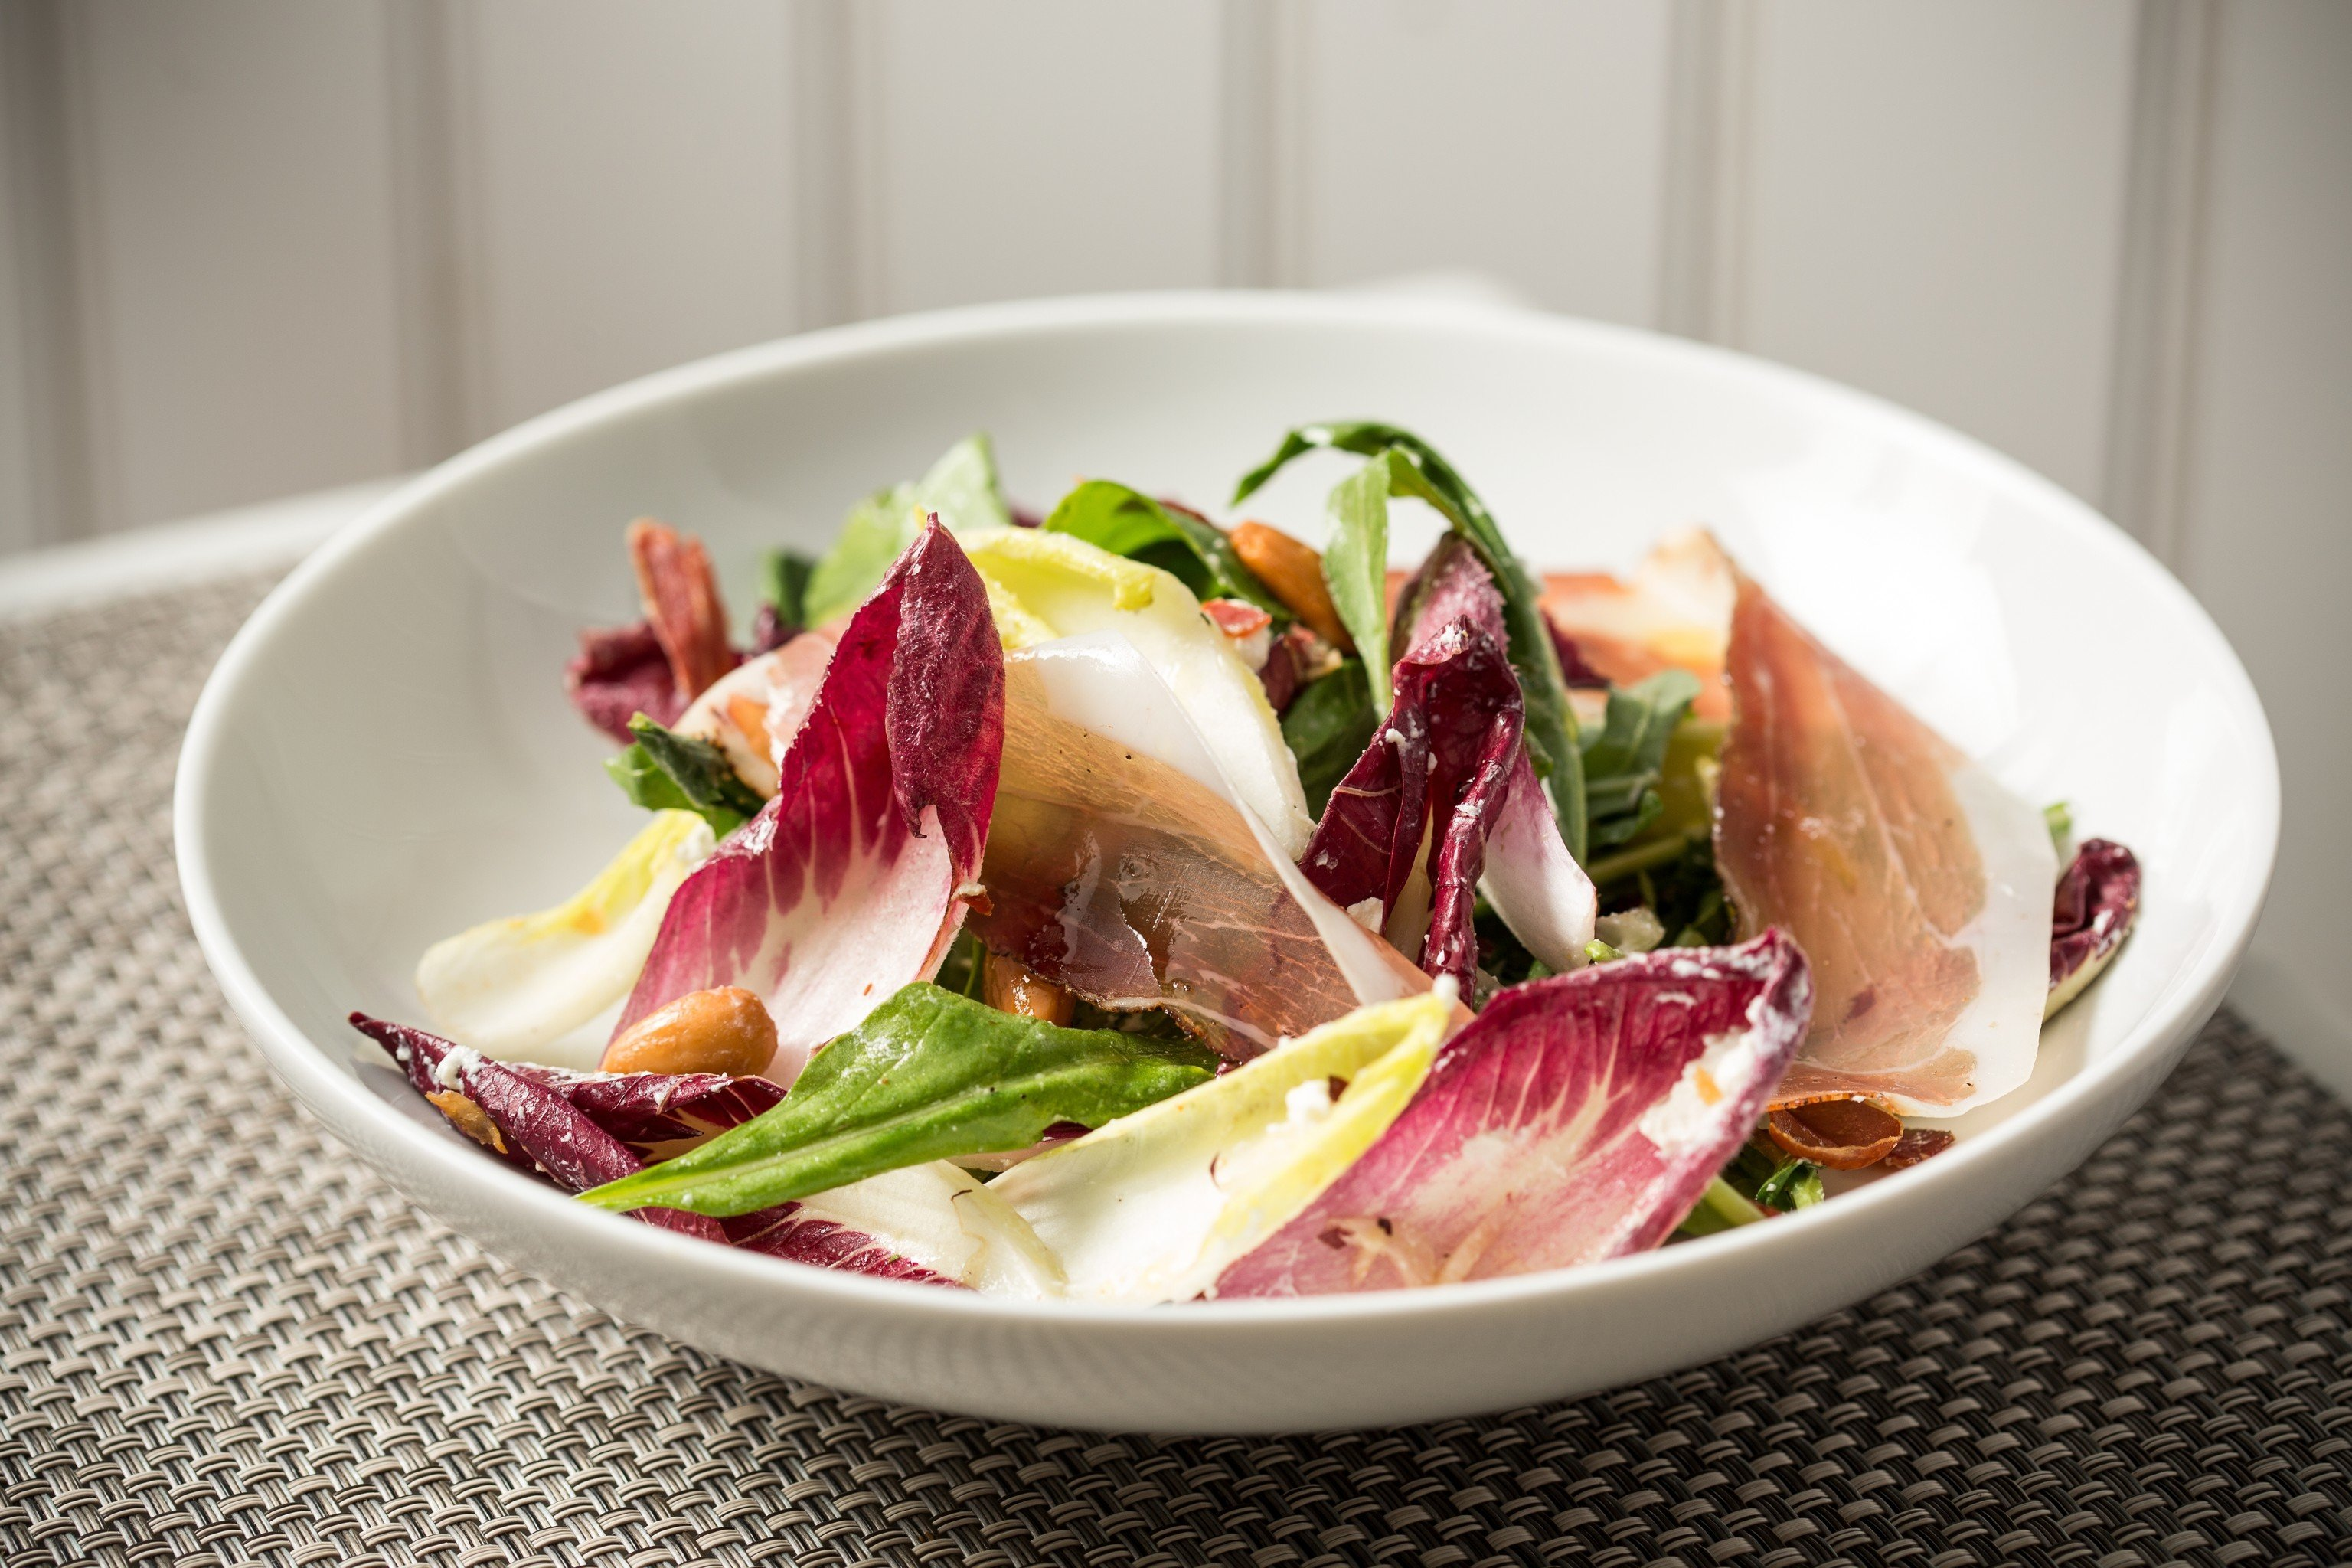 Food + Drink plate food dish salad produce vegetable shallot land plant meat meal prosciutto cuisine flowering plant dessert containing arranged